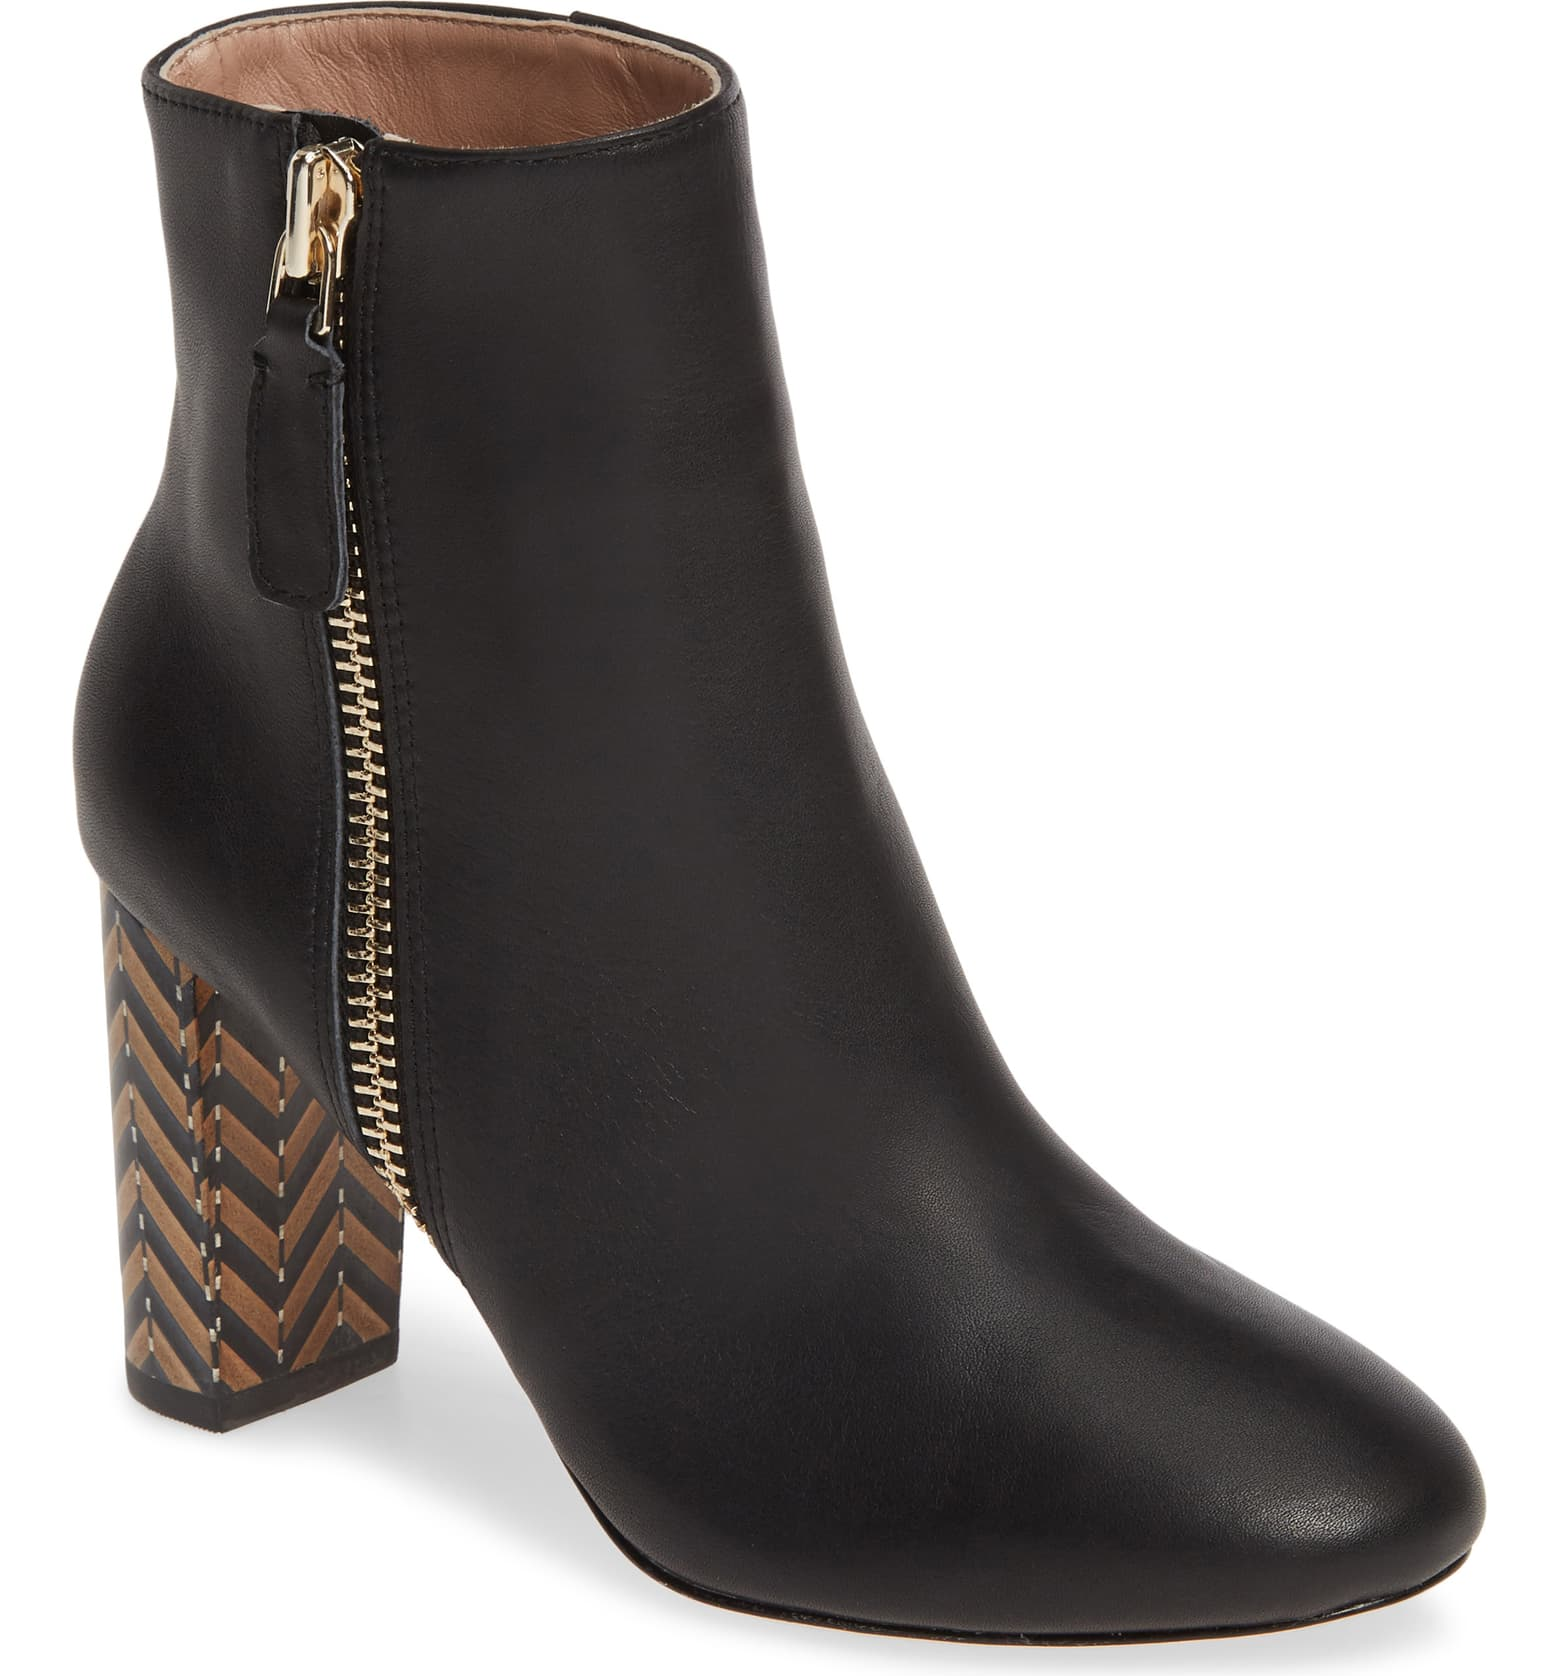 Delila Bootie for fall 2019 with a hint of pattern play on the heels.